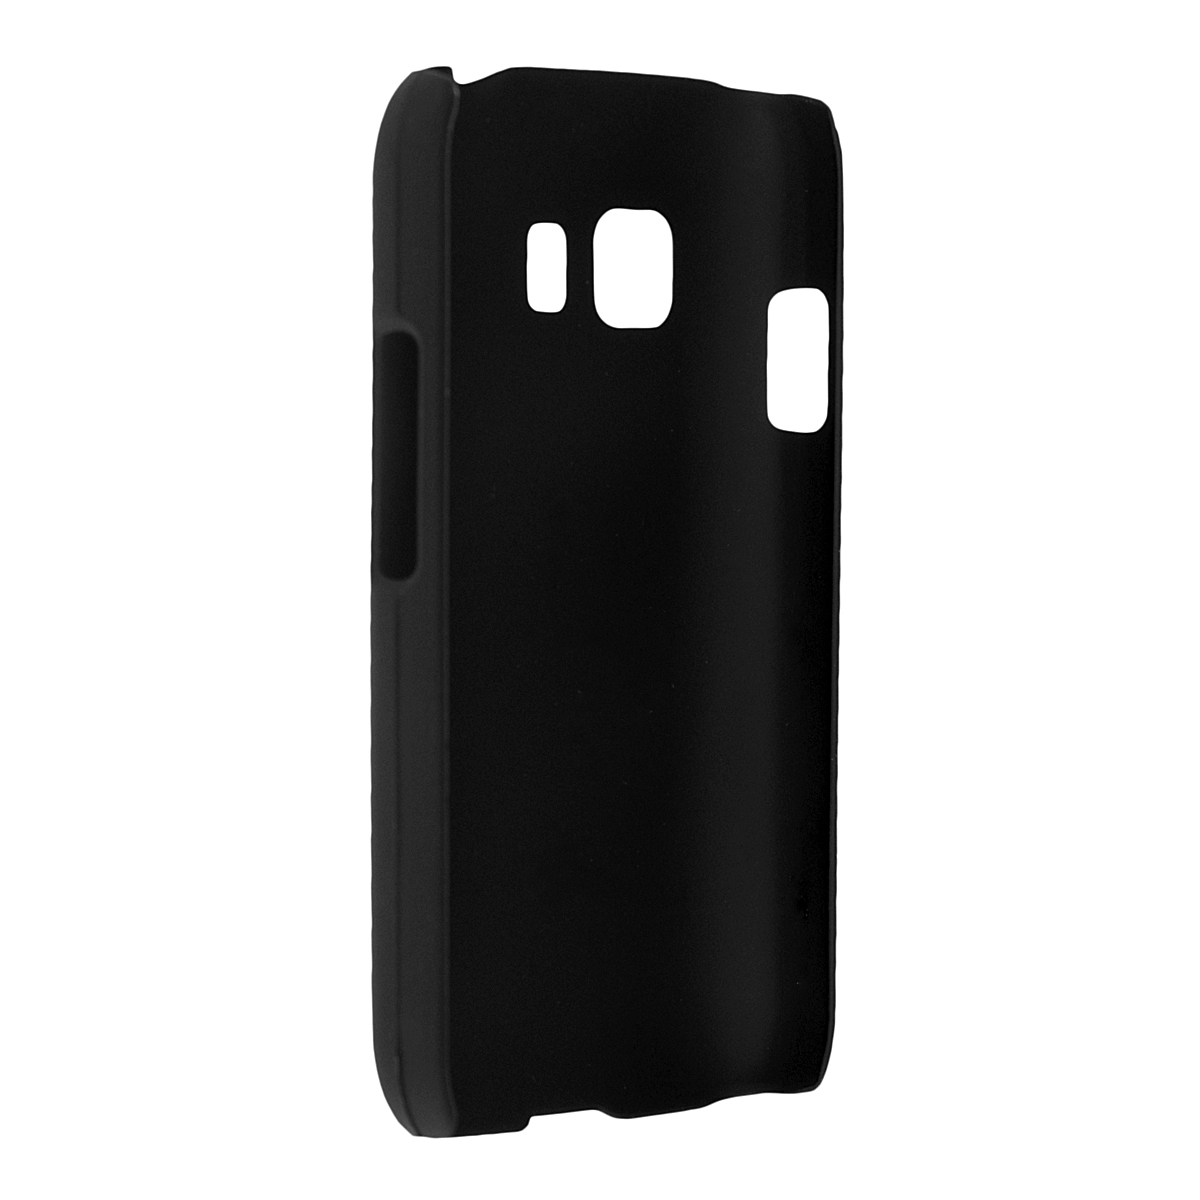 Skinbox Shield 4People чехол для Samsung Galaxy Young 2, Black skinbox samsung galaxy young 2 sm g130h shield 4people